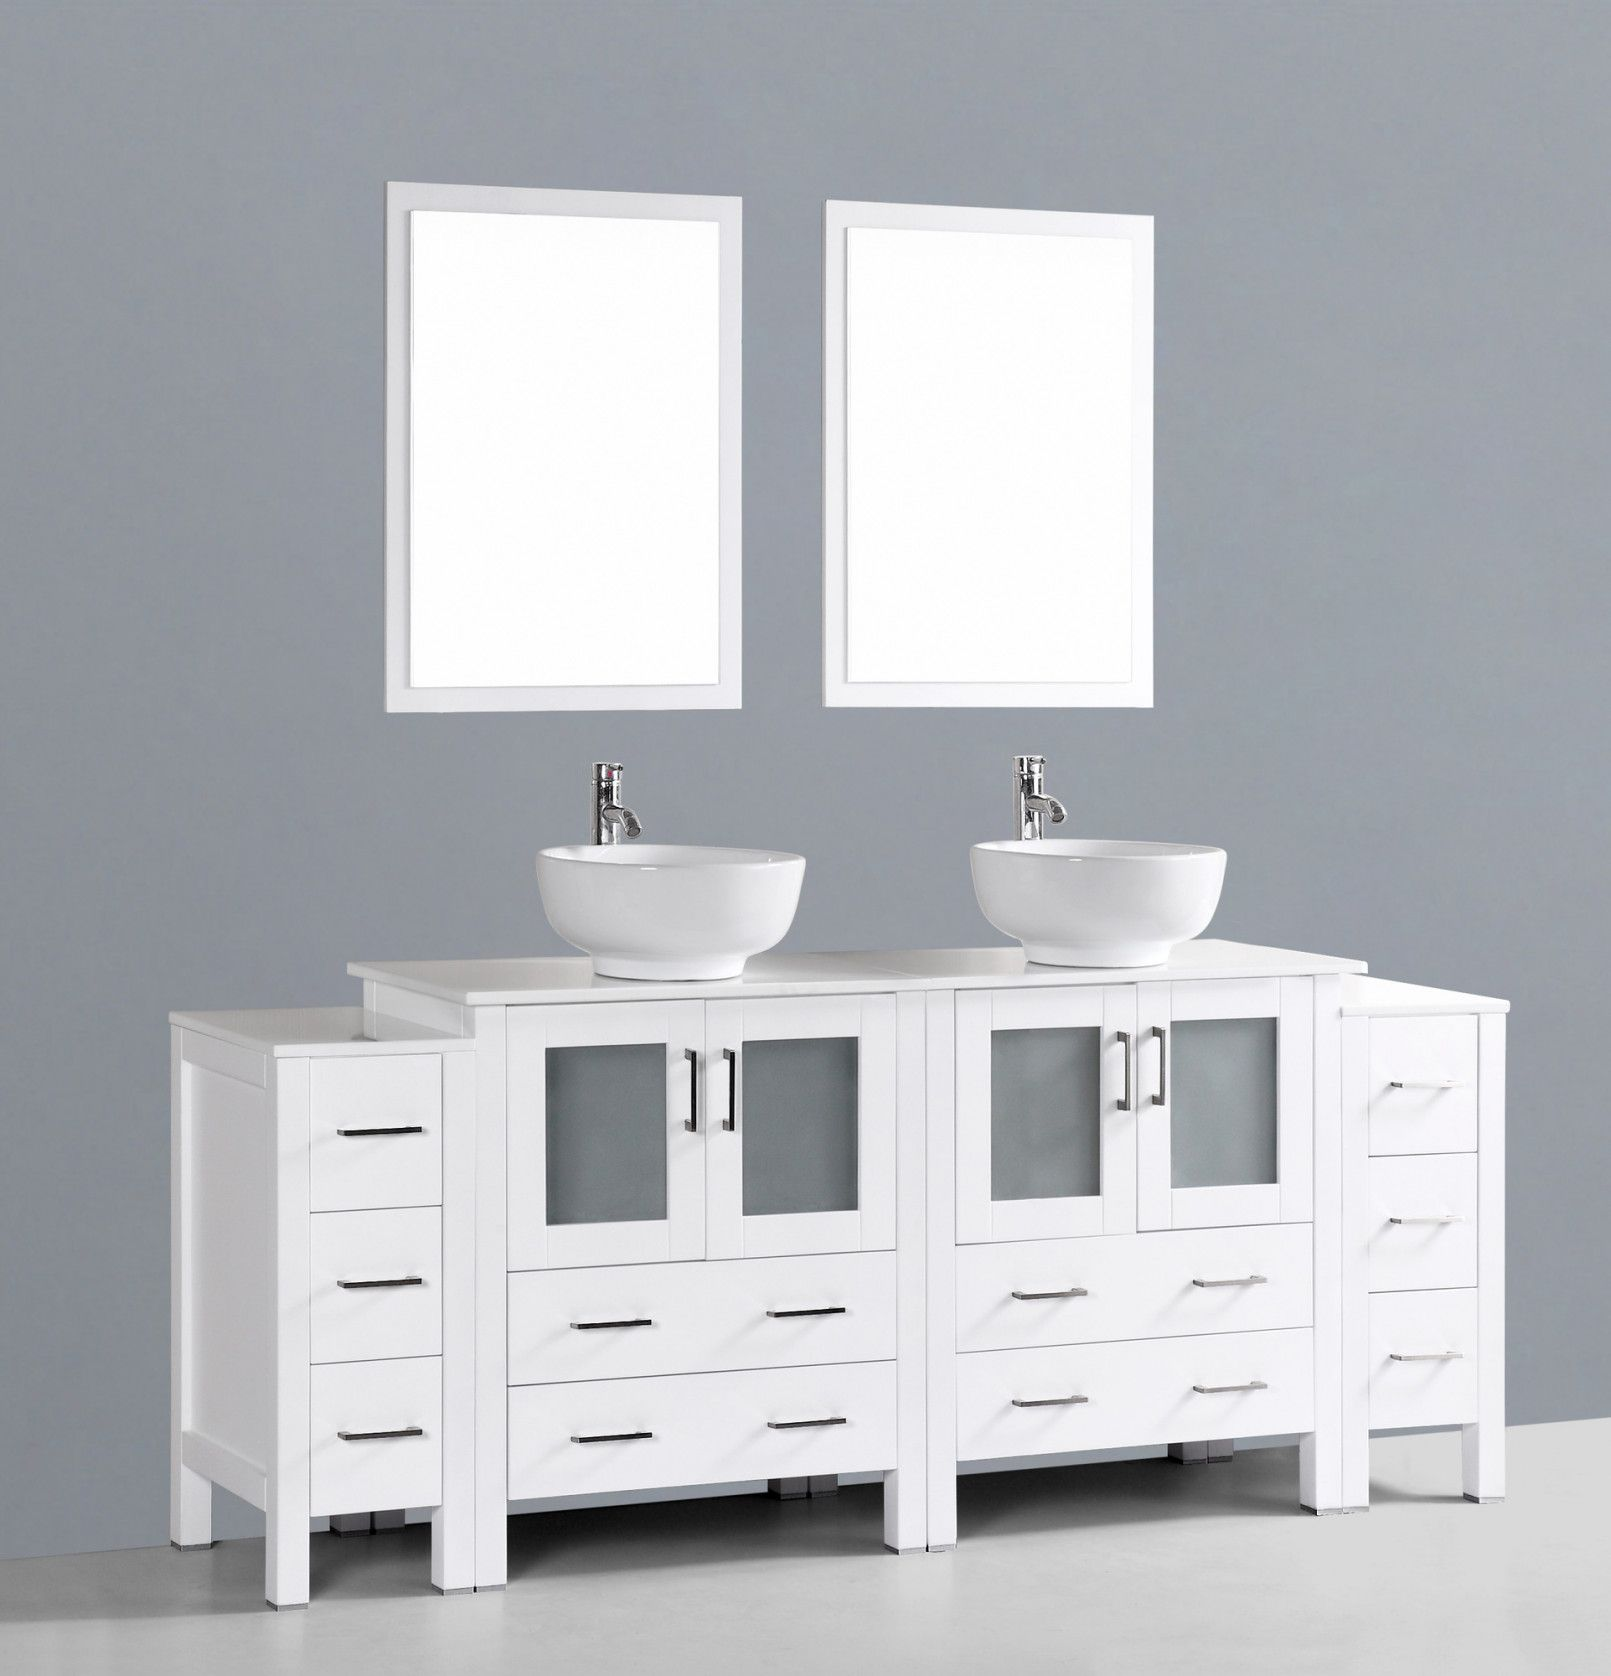 20 84 Inch Bathroom Vanity Cabinets Apartment Kitchen Cabinet Ideas Check More At